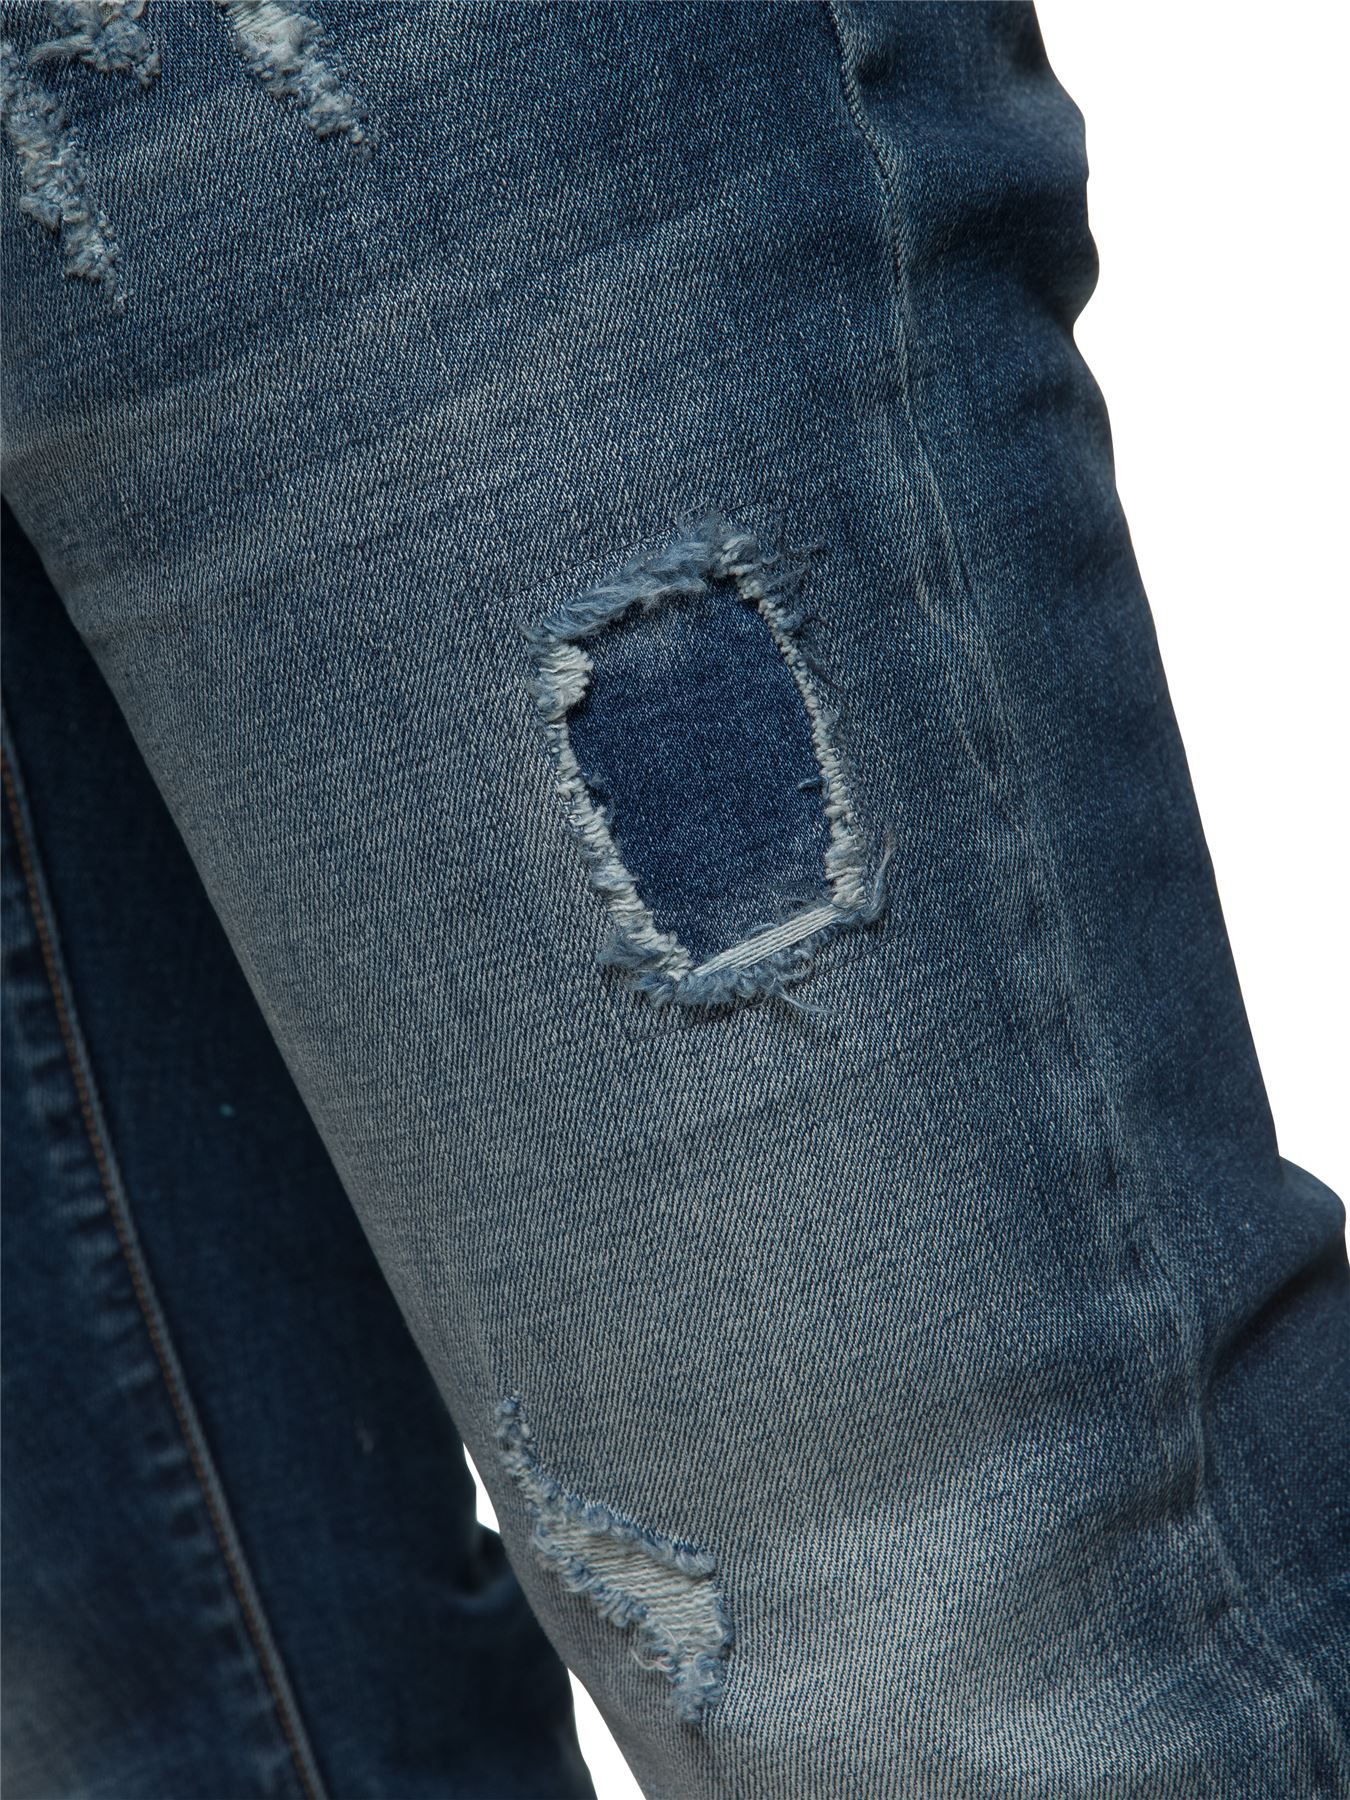 ETO-Designer-Mens-Ripped-Blue-Jeans-Distressed-Denim-Tapered-Fit-Trousers-Pants thumbnail 7